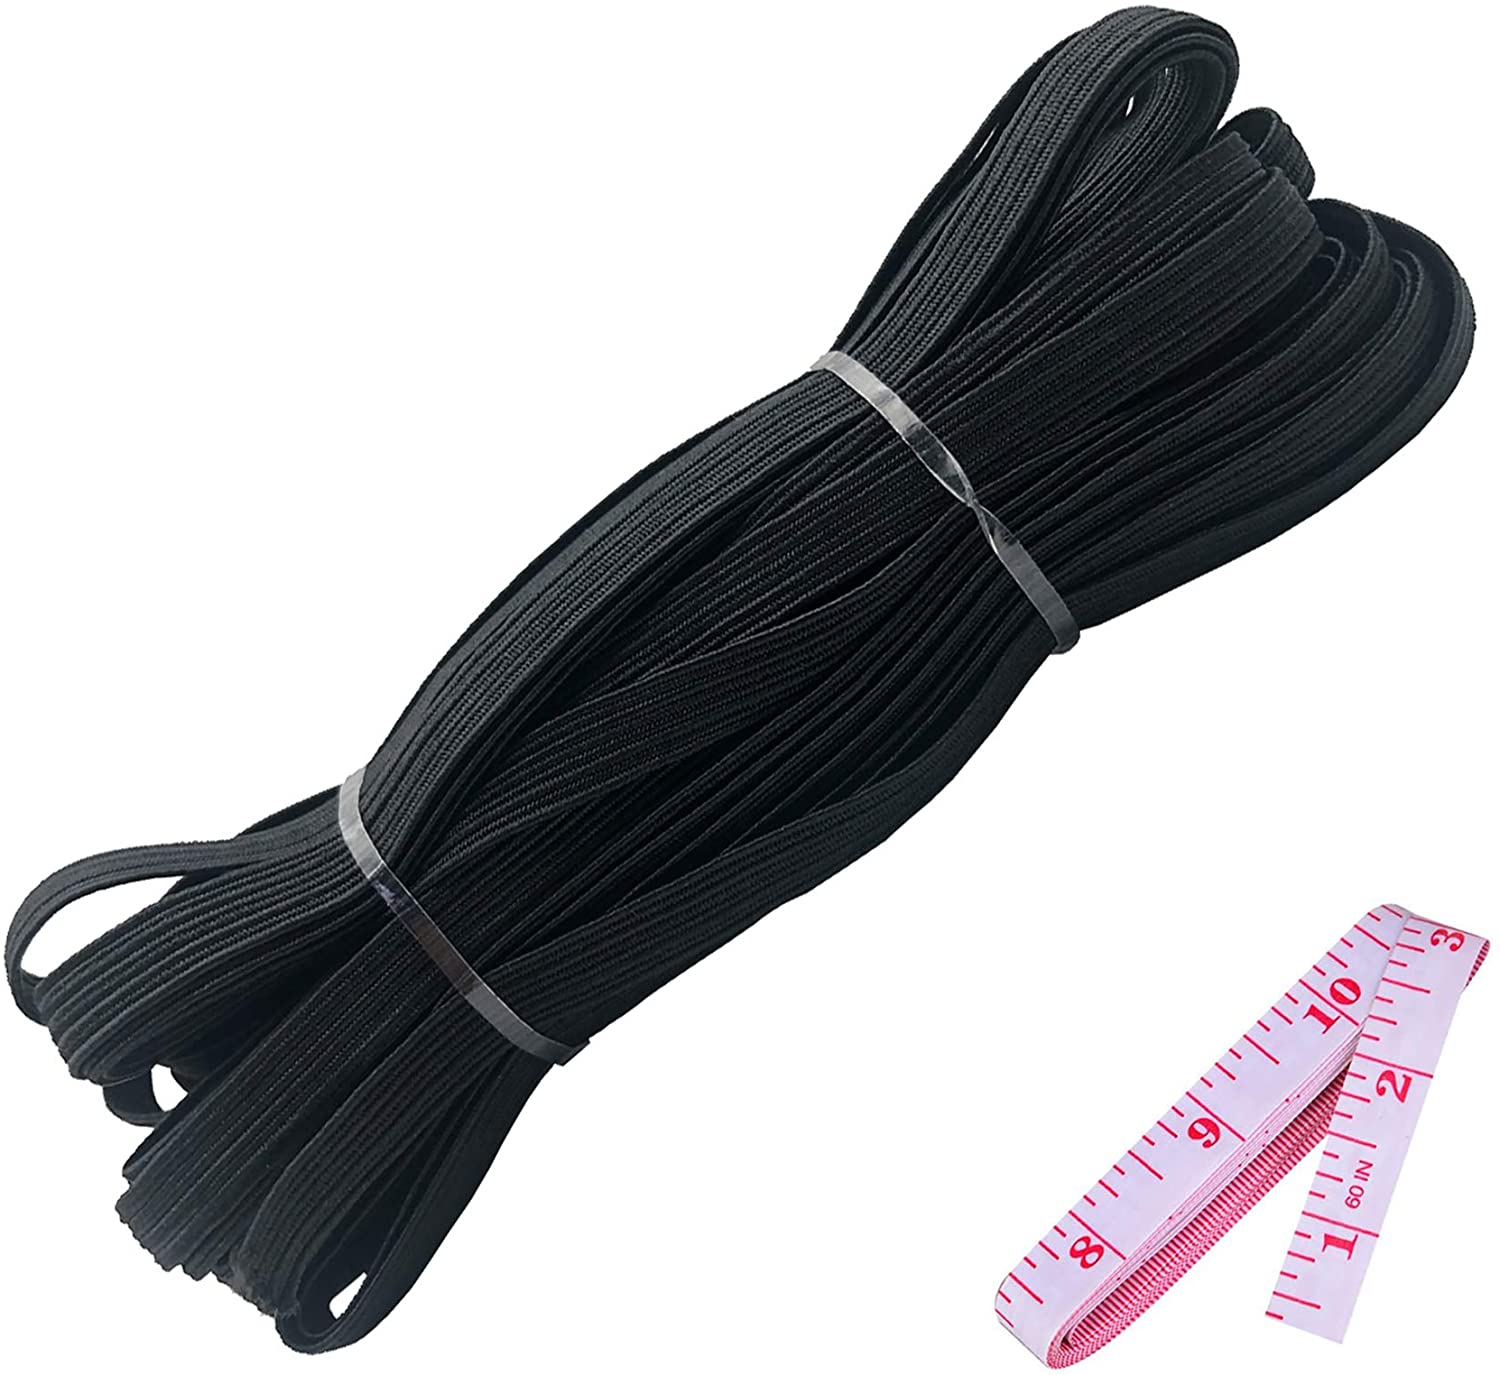 Elastic Bands Craft Flat Cord Rope Braided Stretch Strap 10 Yards 1/4 Inch Knit Elastic String Spool, Quarter Inch Elastic for Sewing, Mask, Craft, Black Elastic + 60'' Tape Measure